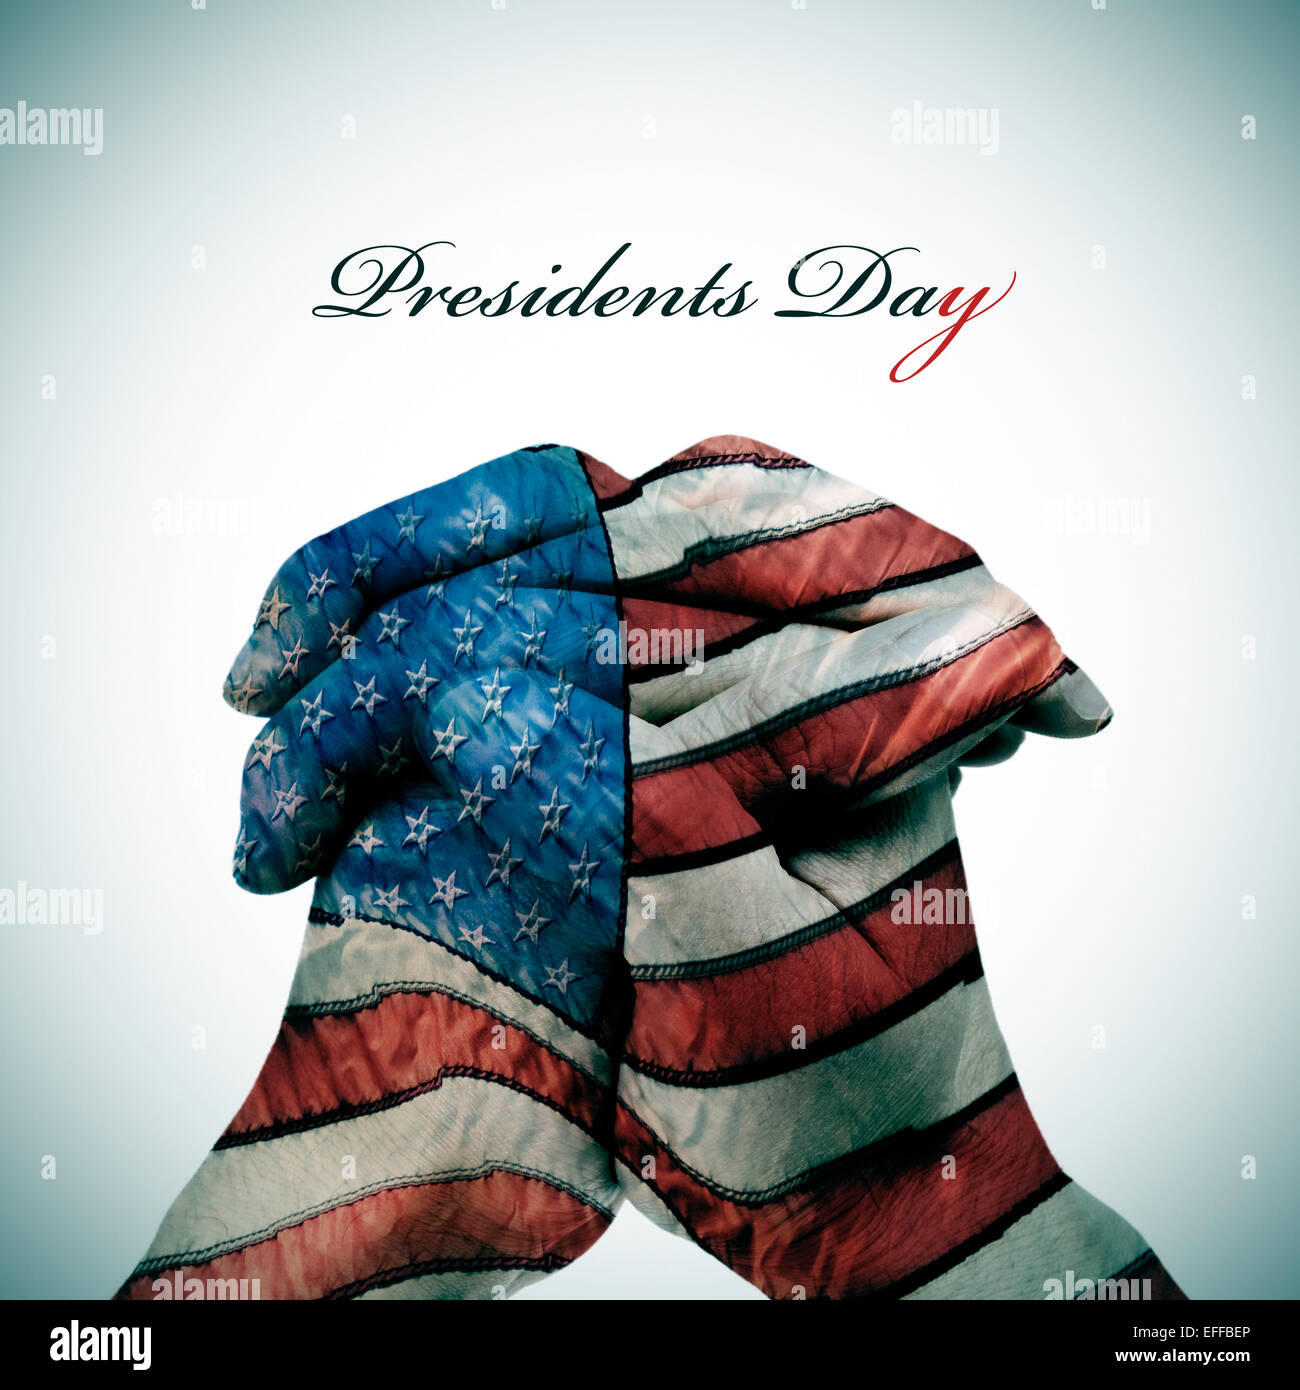 the text Presidents Day and man clasped hands patterned with the flag of the United States - Stock Image